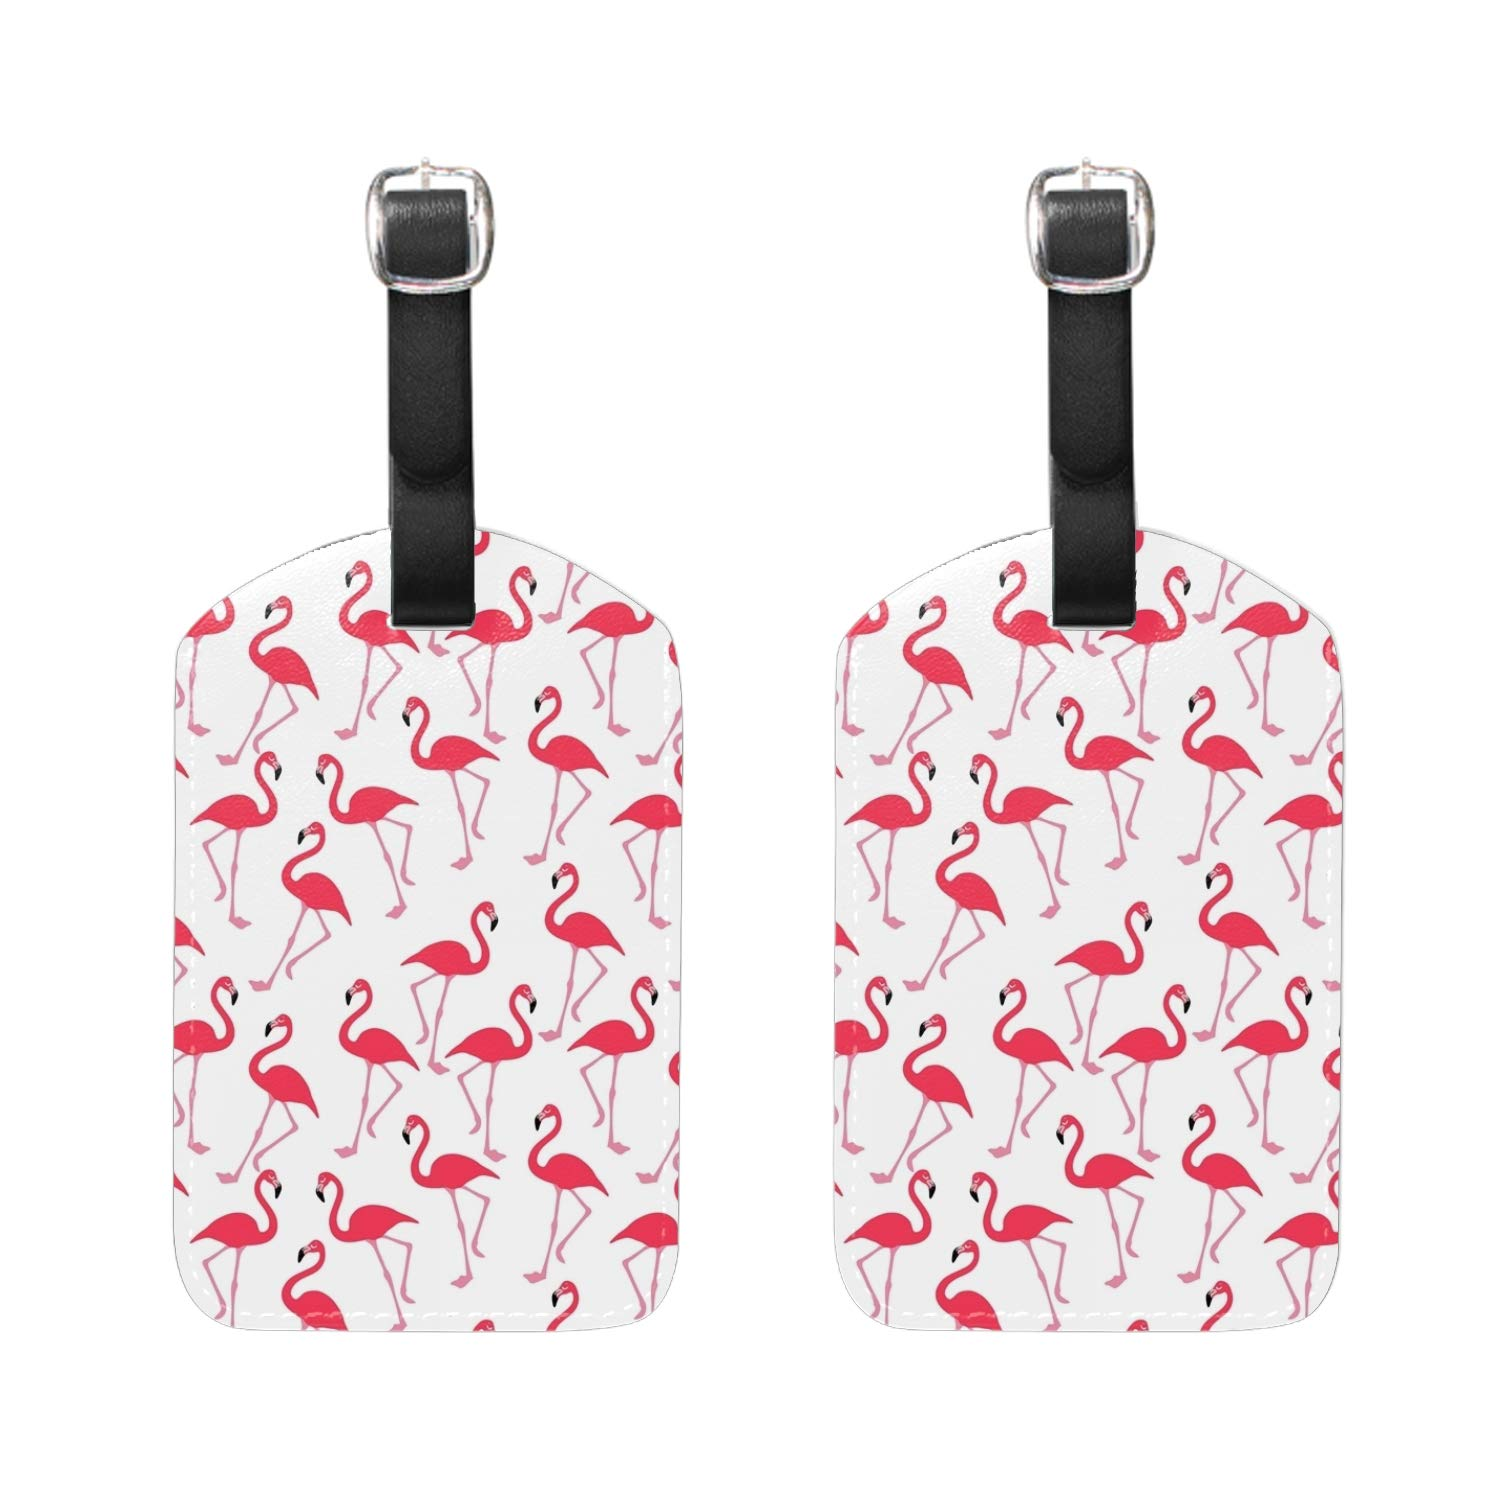 Roses Floral Print Luggage Tags /& Bag Tags 2 pieces Set